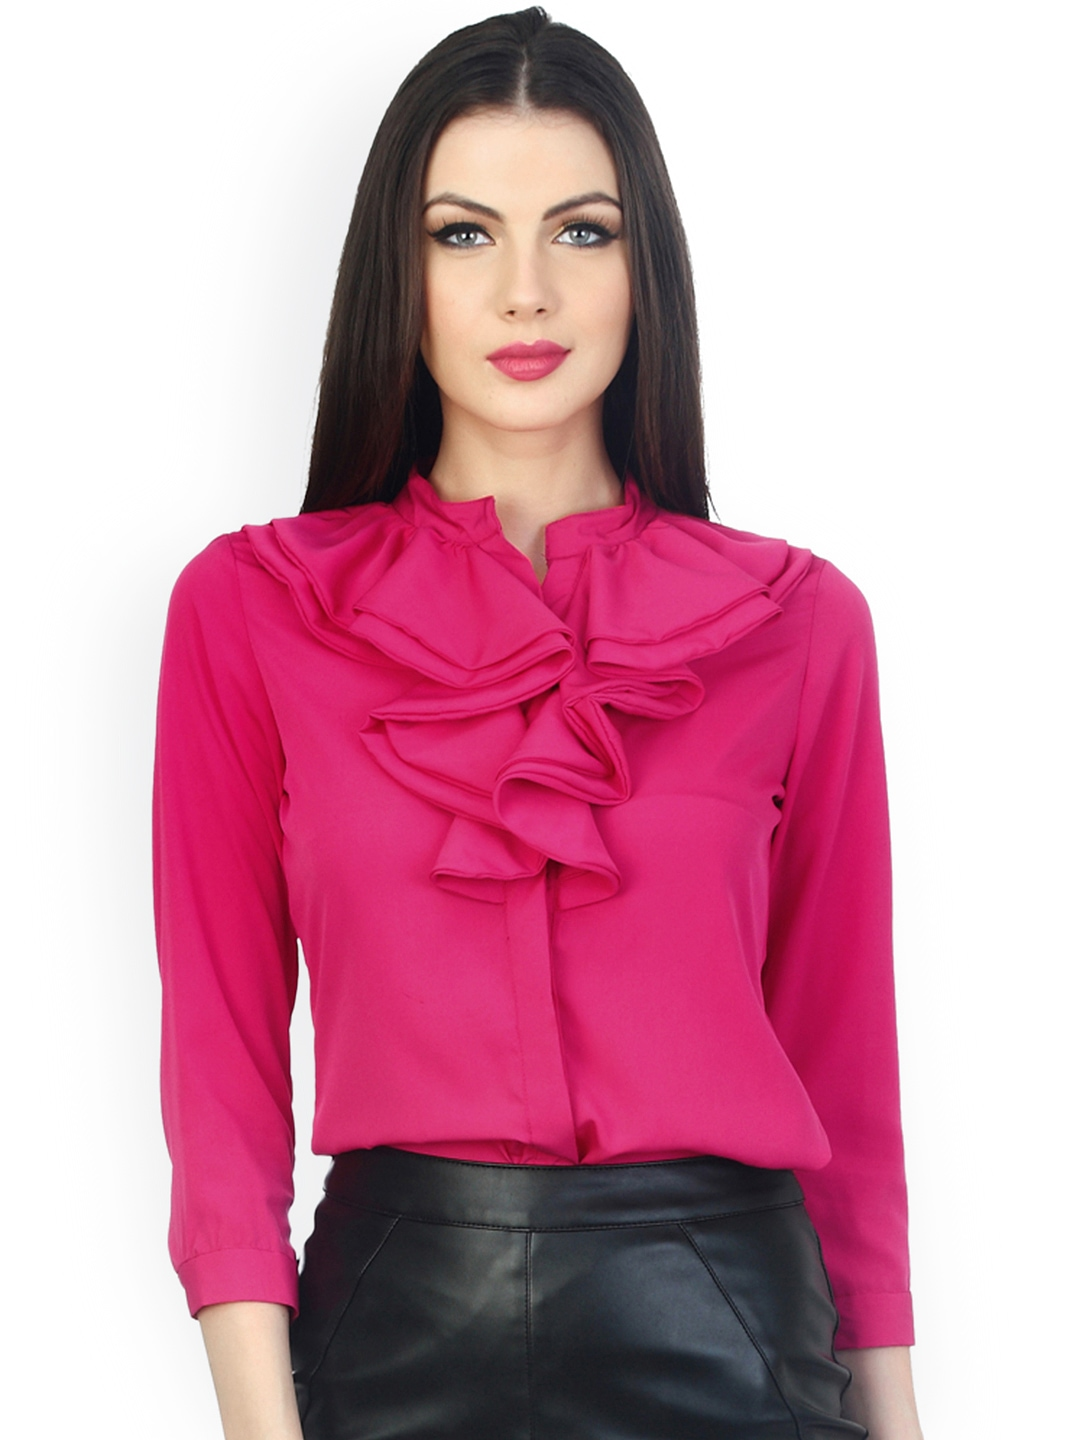 Myntra faballey pink shirt 823561 buy myntra faballey for Shirts online shopping lowest price